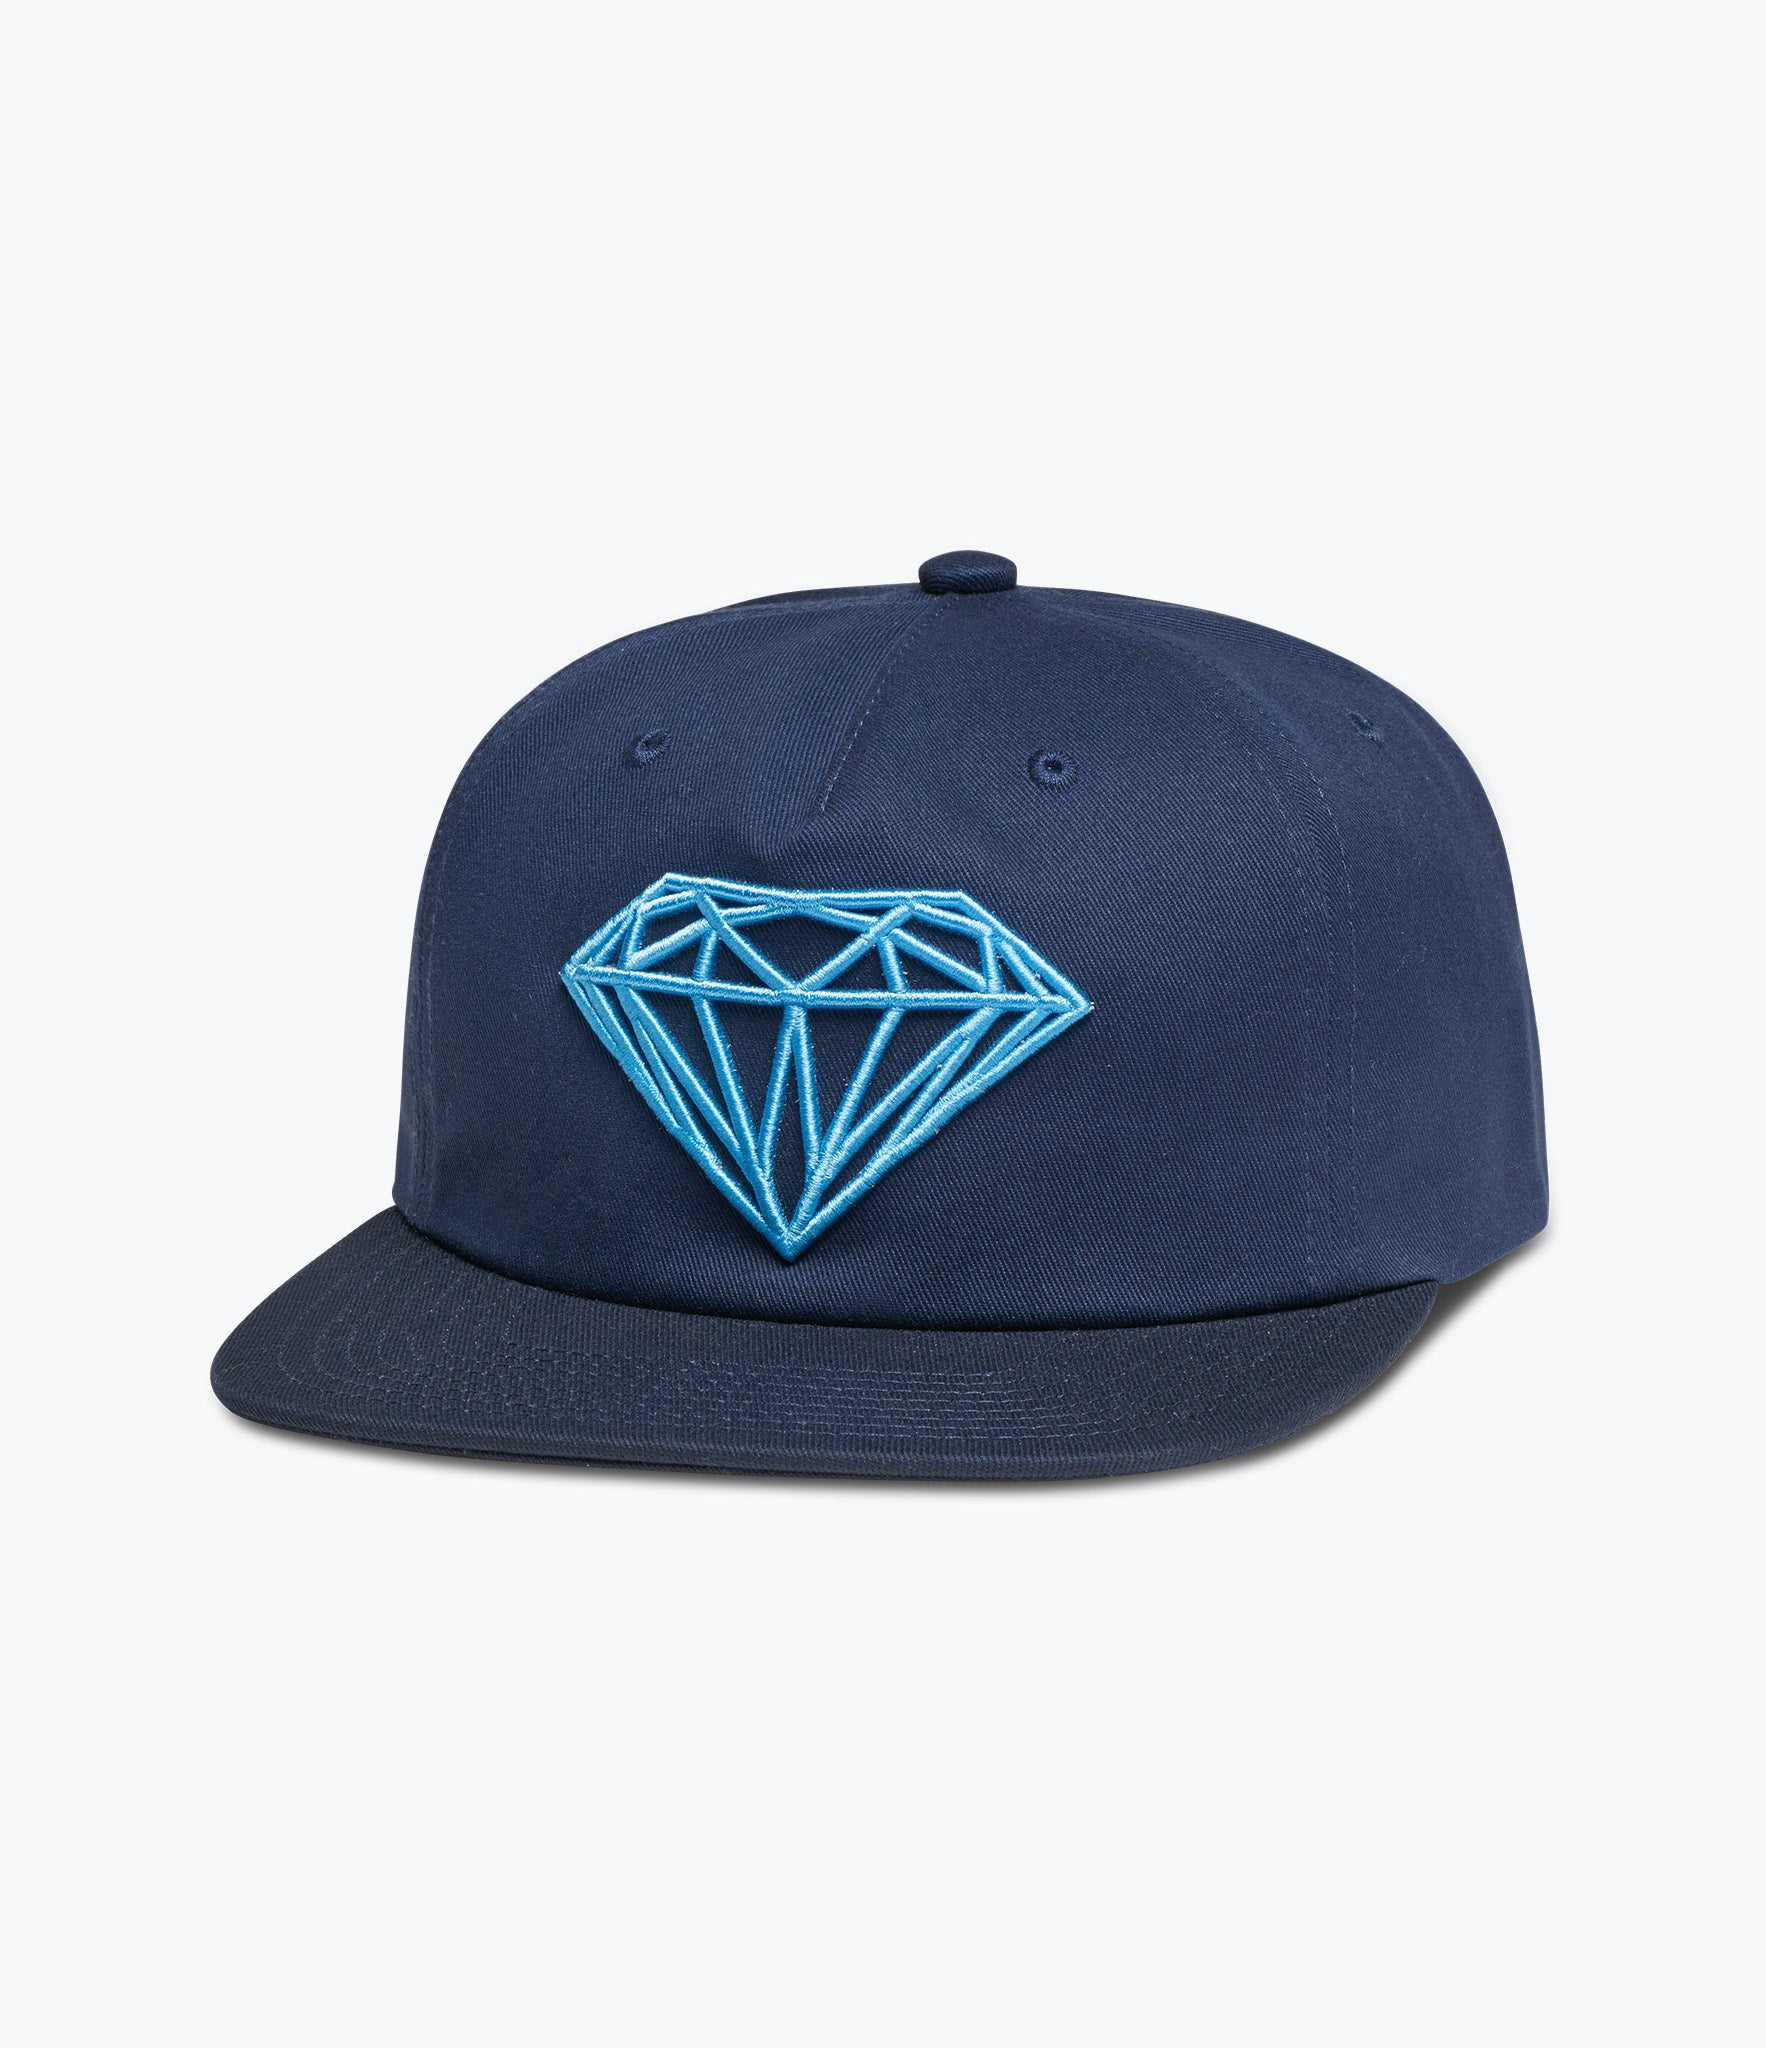 132ebbb5b5b Diamond Supply Co. Diablo Snapback